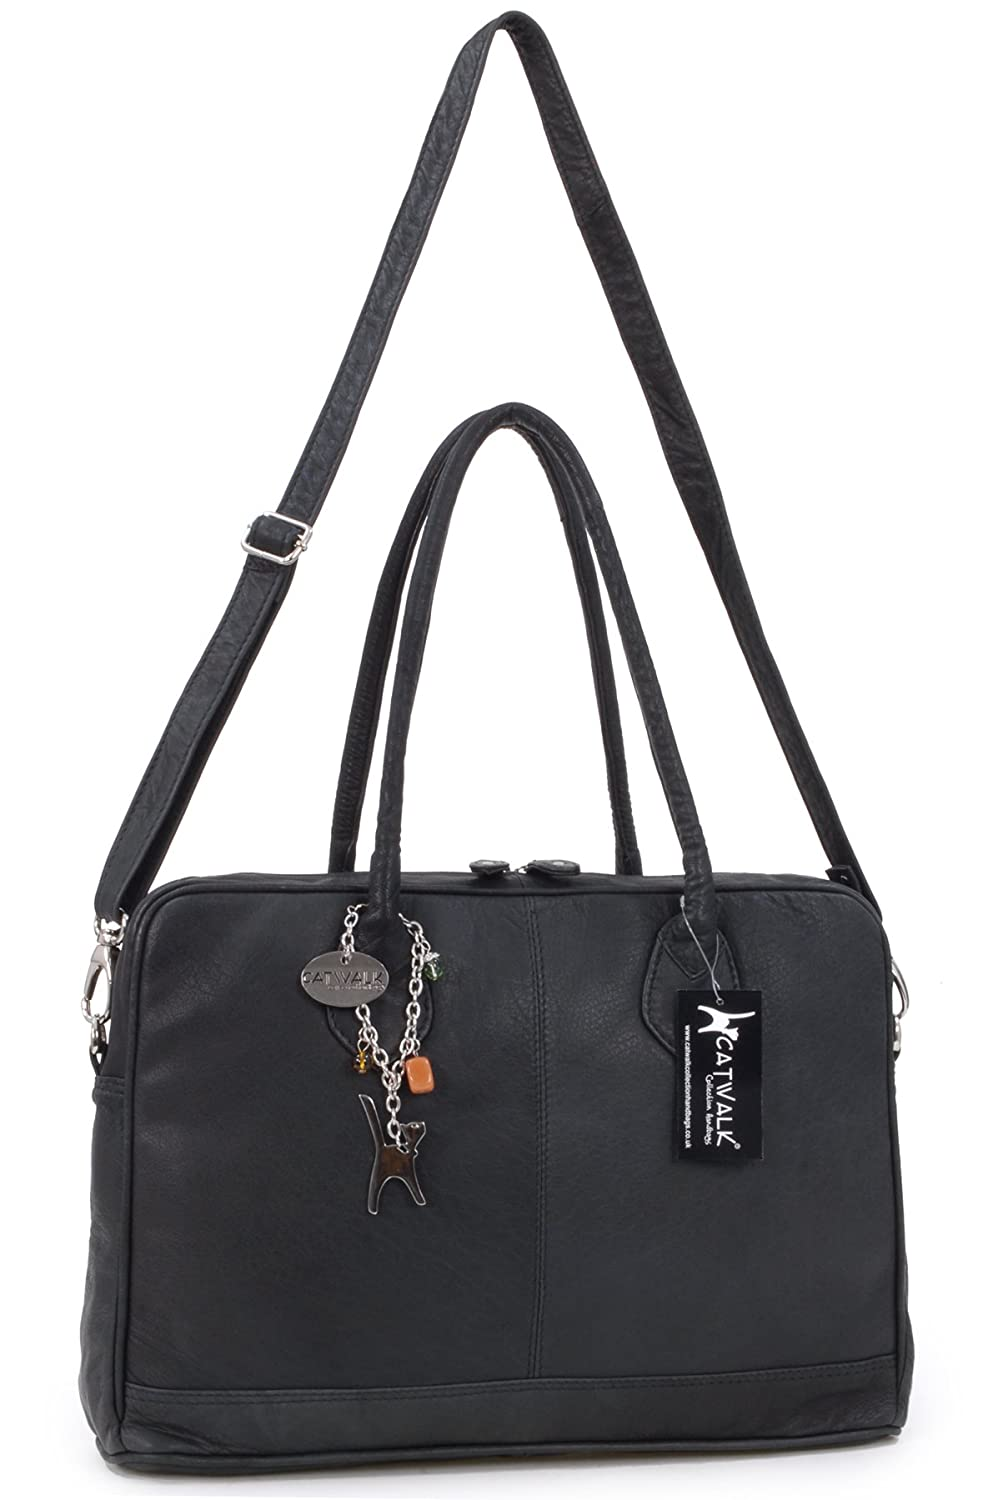 Catwalk Collection A4 Leather Work Bag - Grosvenor - Black  Amazon.co.uk   Shoes   Bags afb1e4724ddb7